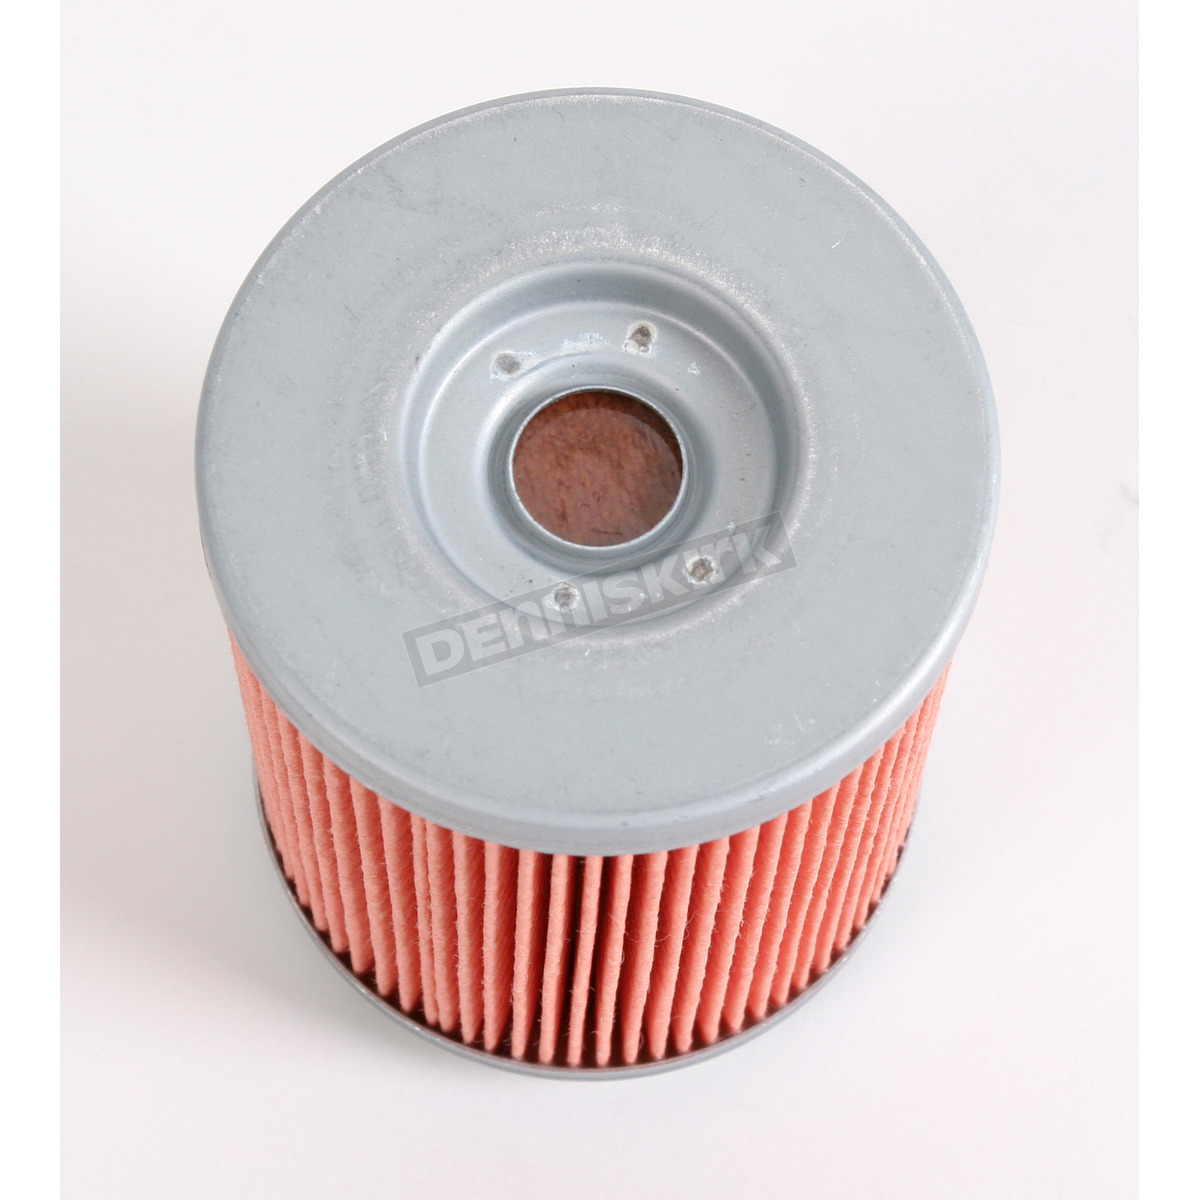 K/&N OIL FILTER 2011-2014 Outlander Max 650 CAN-AM KN-152